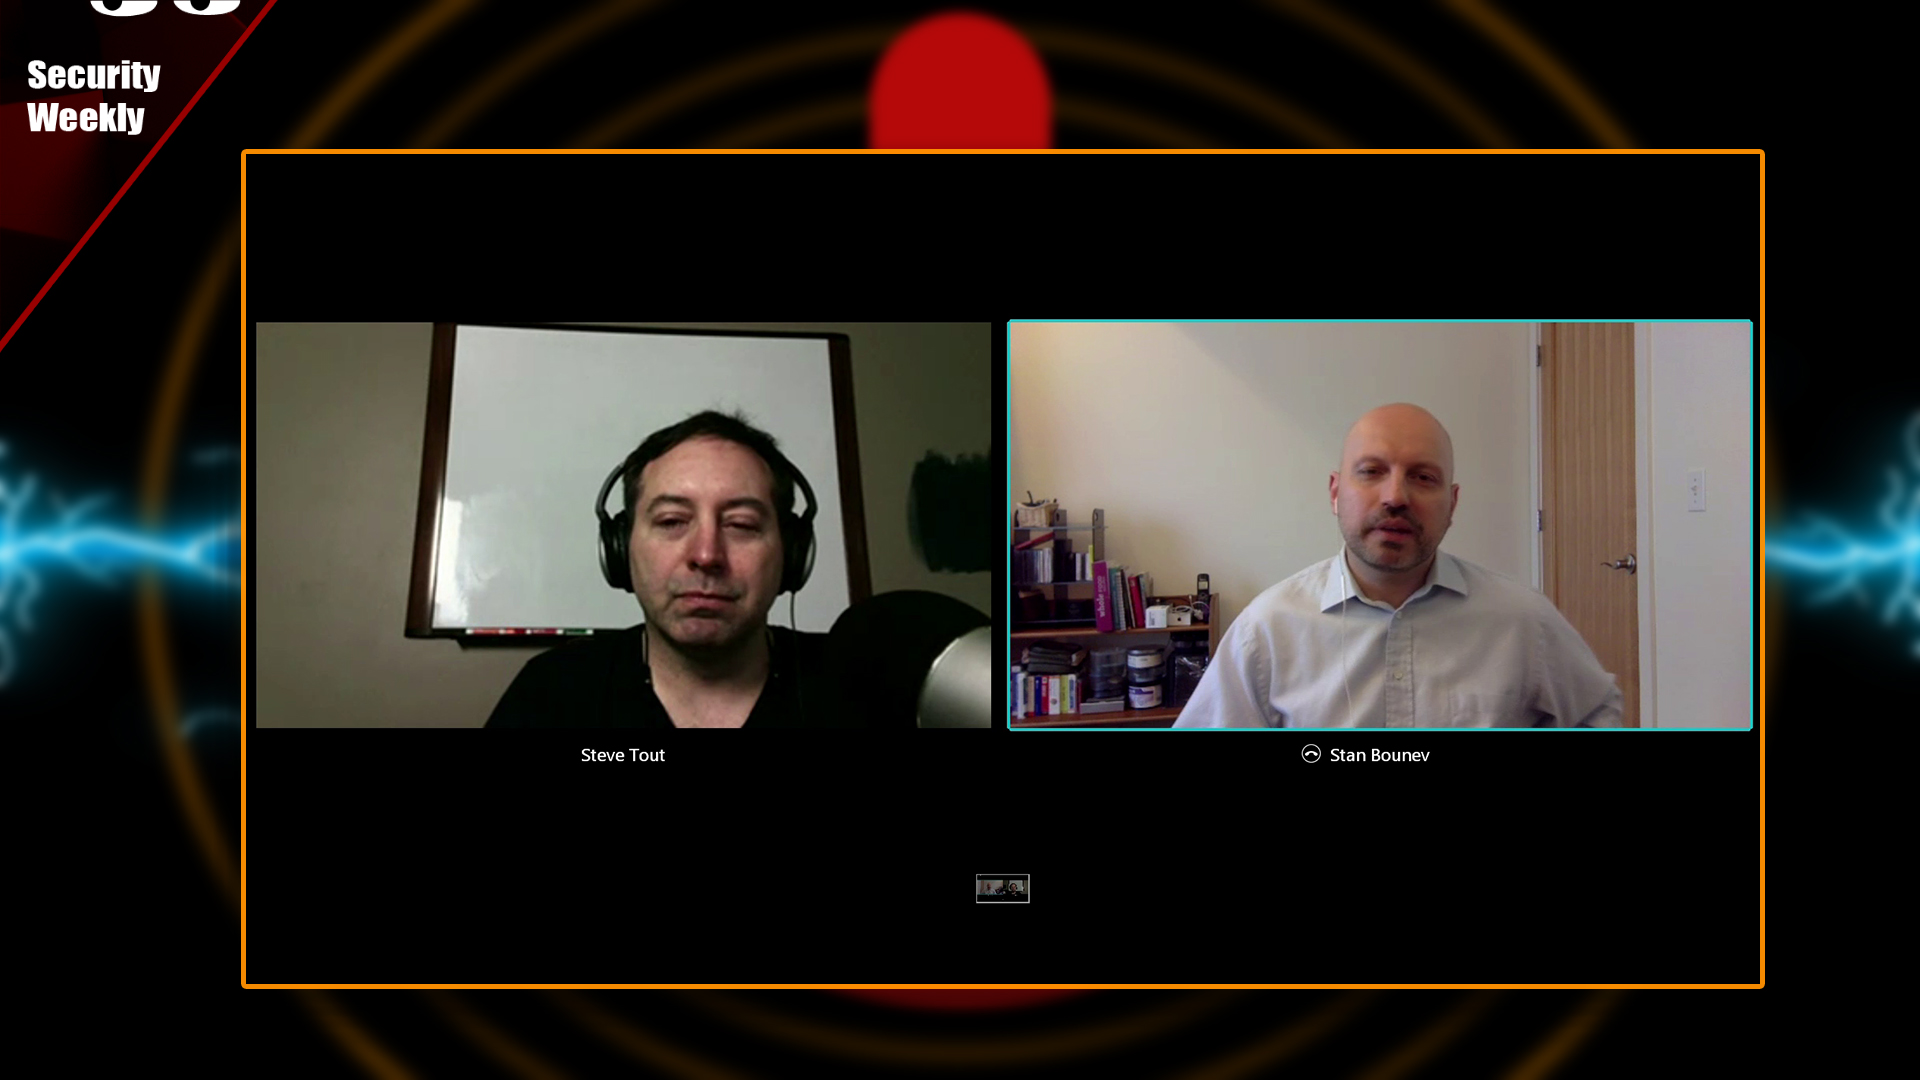 Artwork for Startup Security Weekly #30 - It's All Good